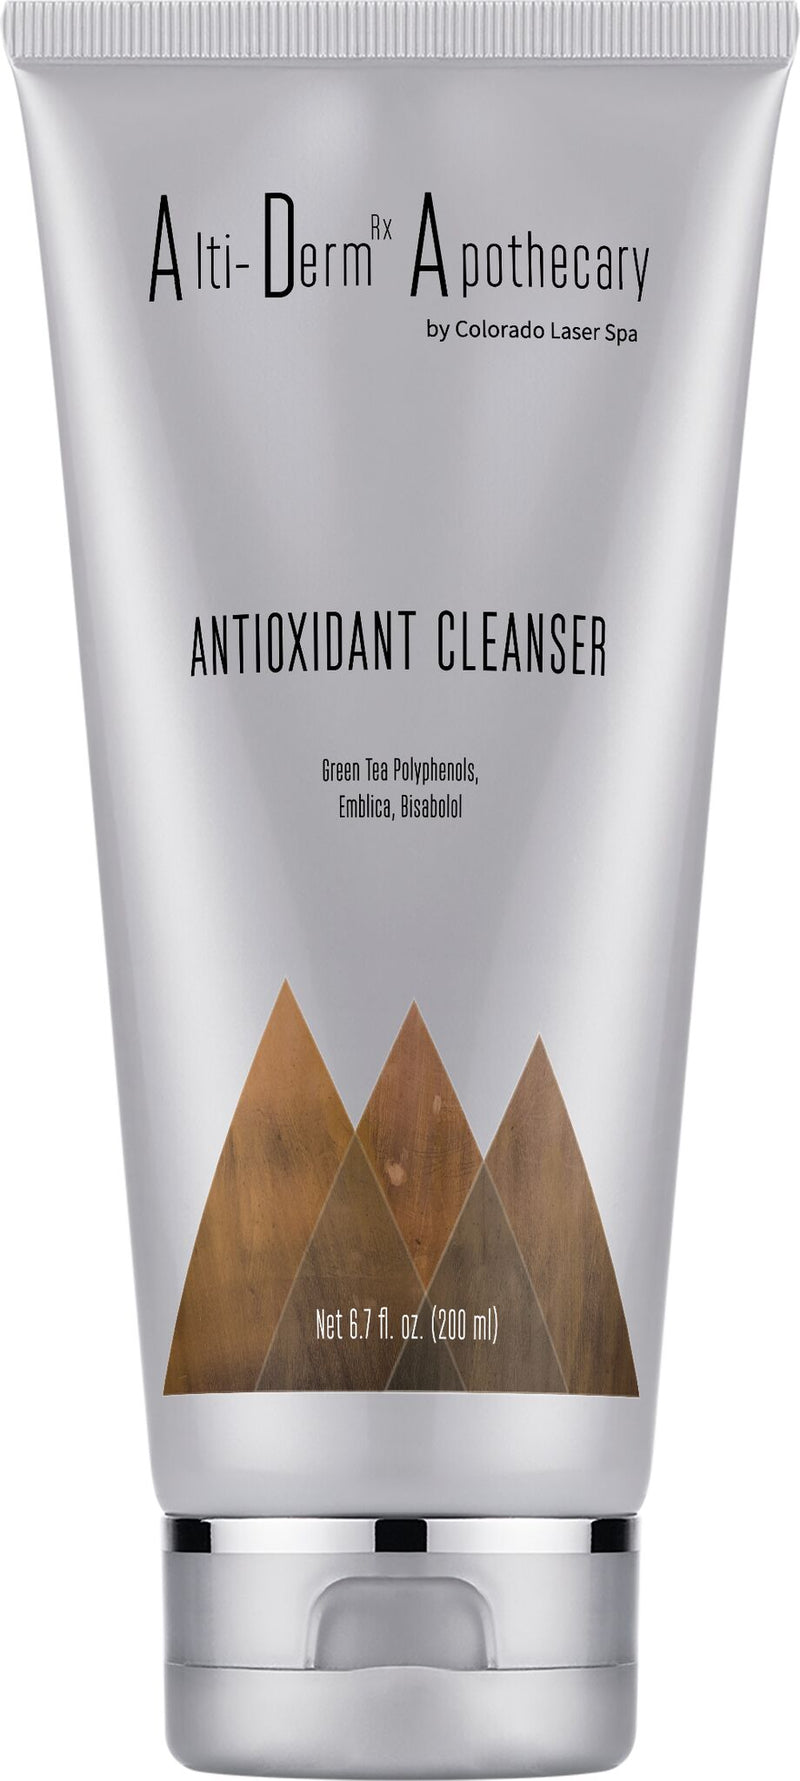 Antioxidant Cleanser